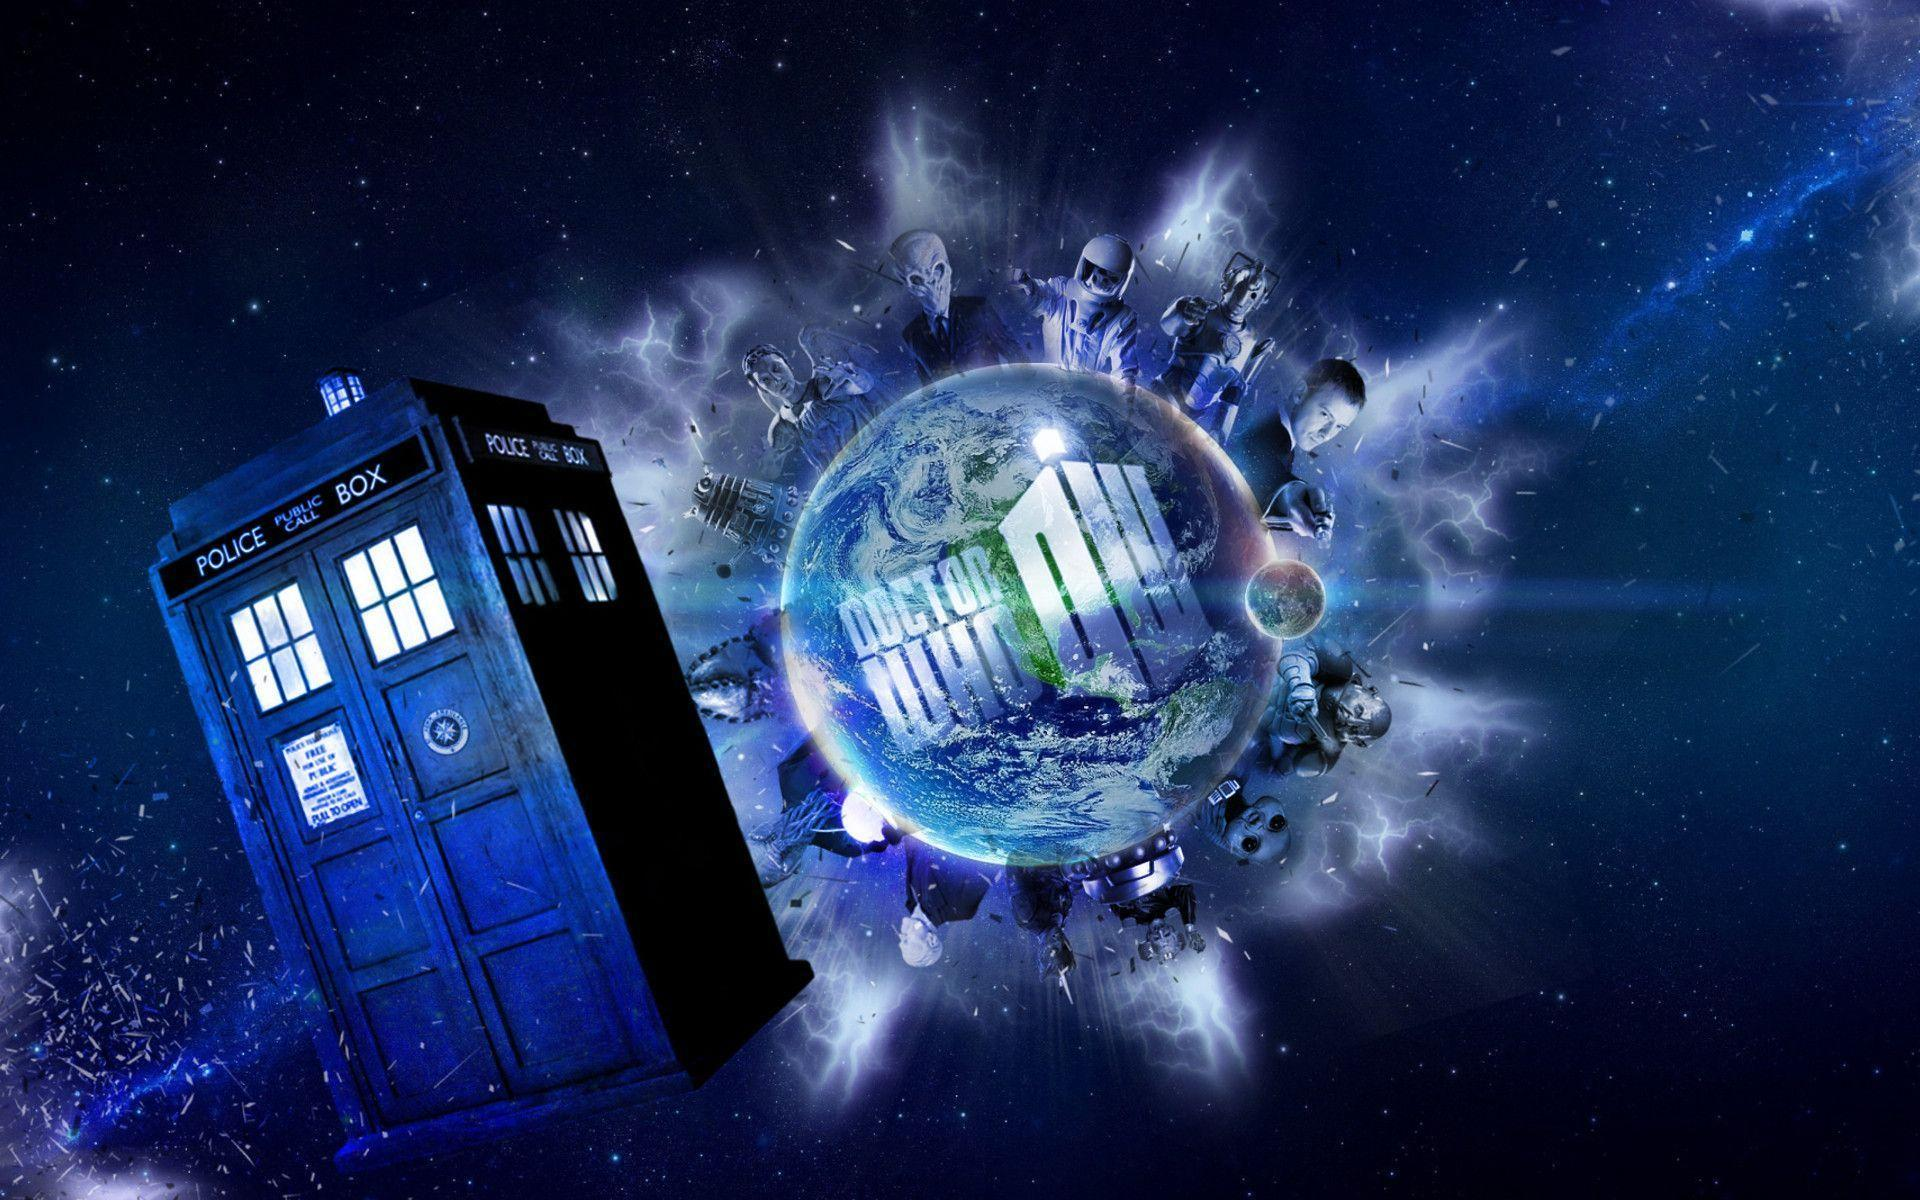 Dr who wallpapers free wallpaper cave - Dr who wallpaper ...